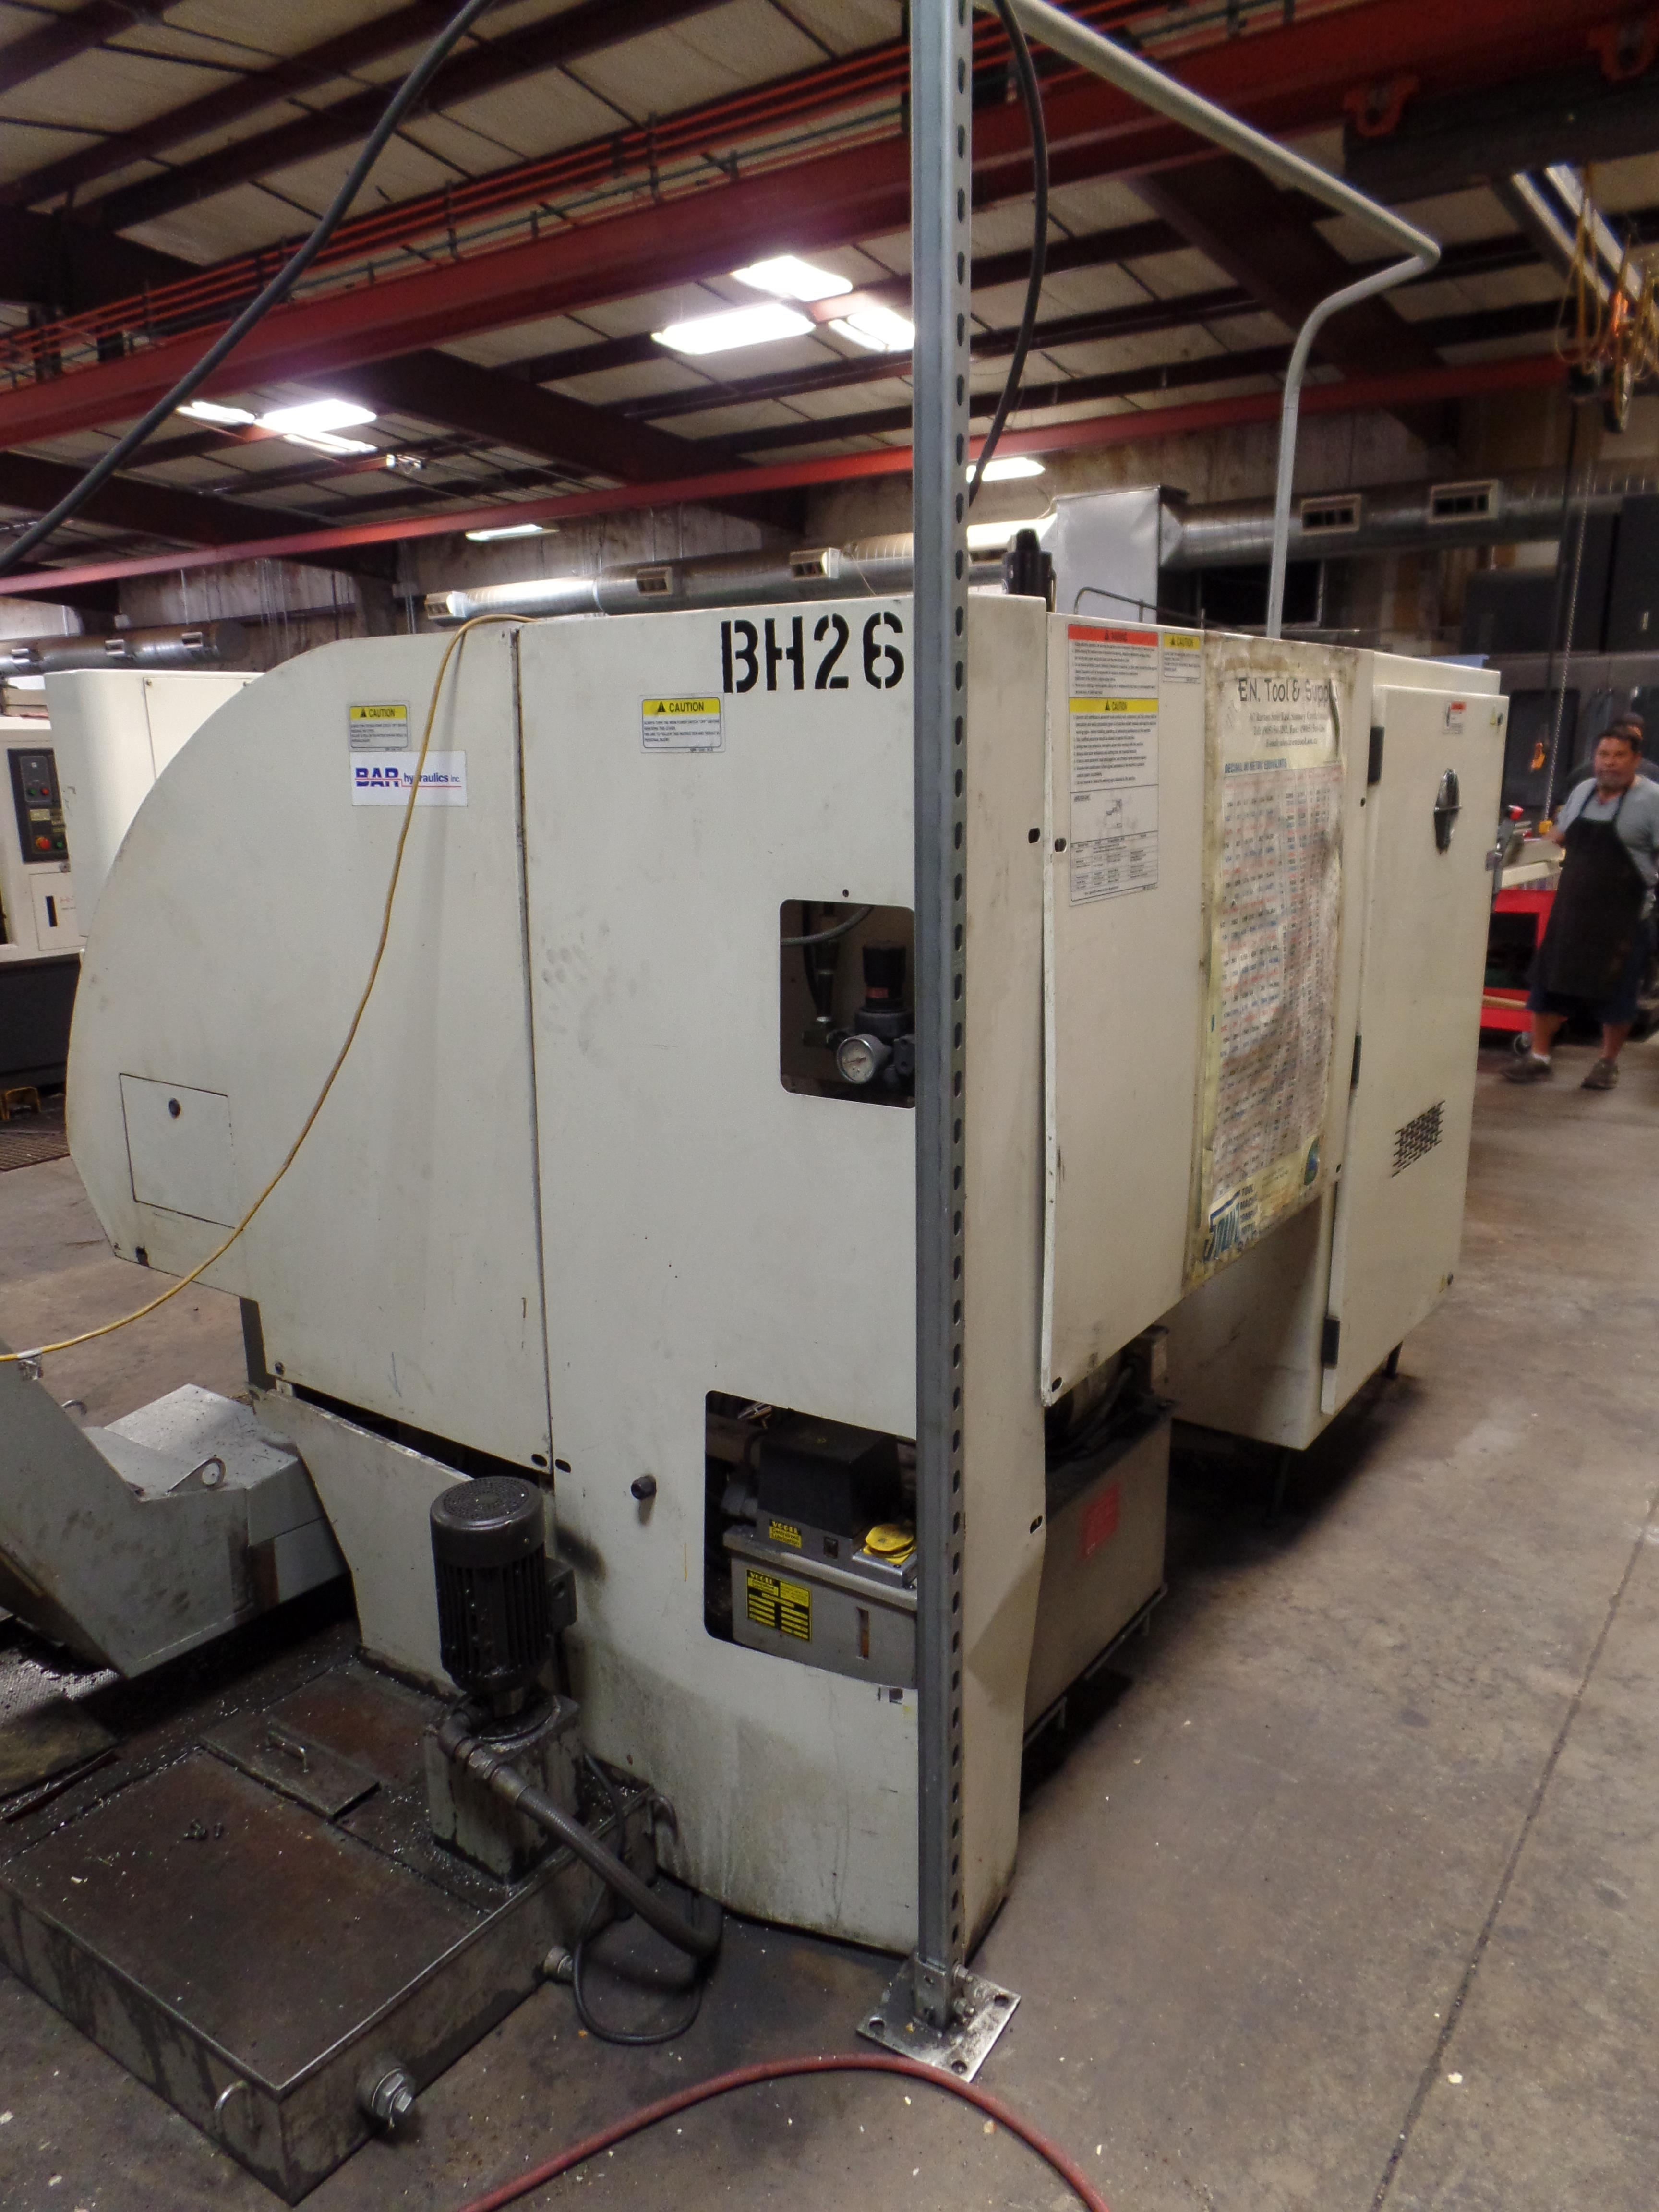 1999 Okuma Crown 762SBB big bore 2-axis CNC turning center with LNS bar feed, OSP700L control, parts - Image 5 of 16